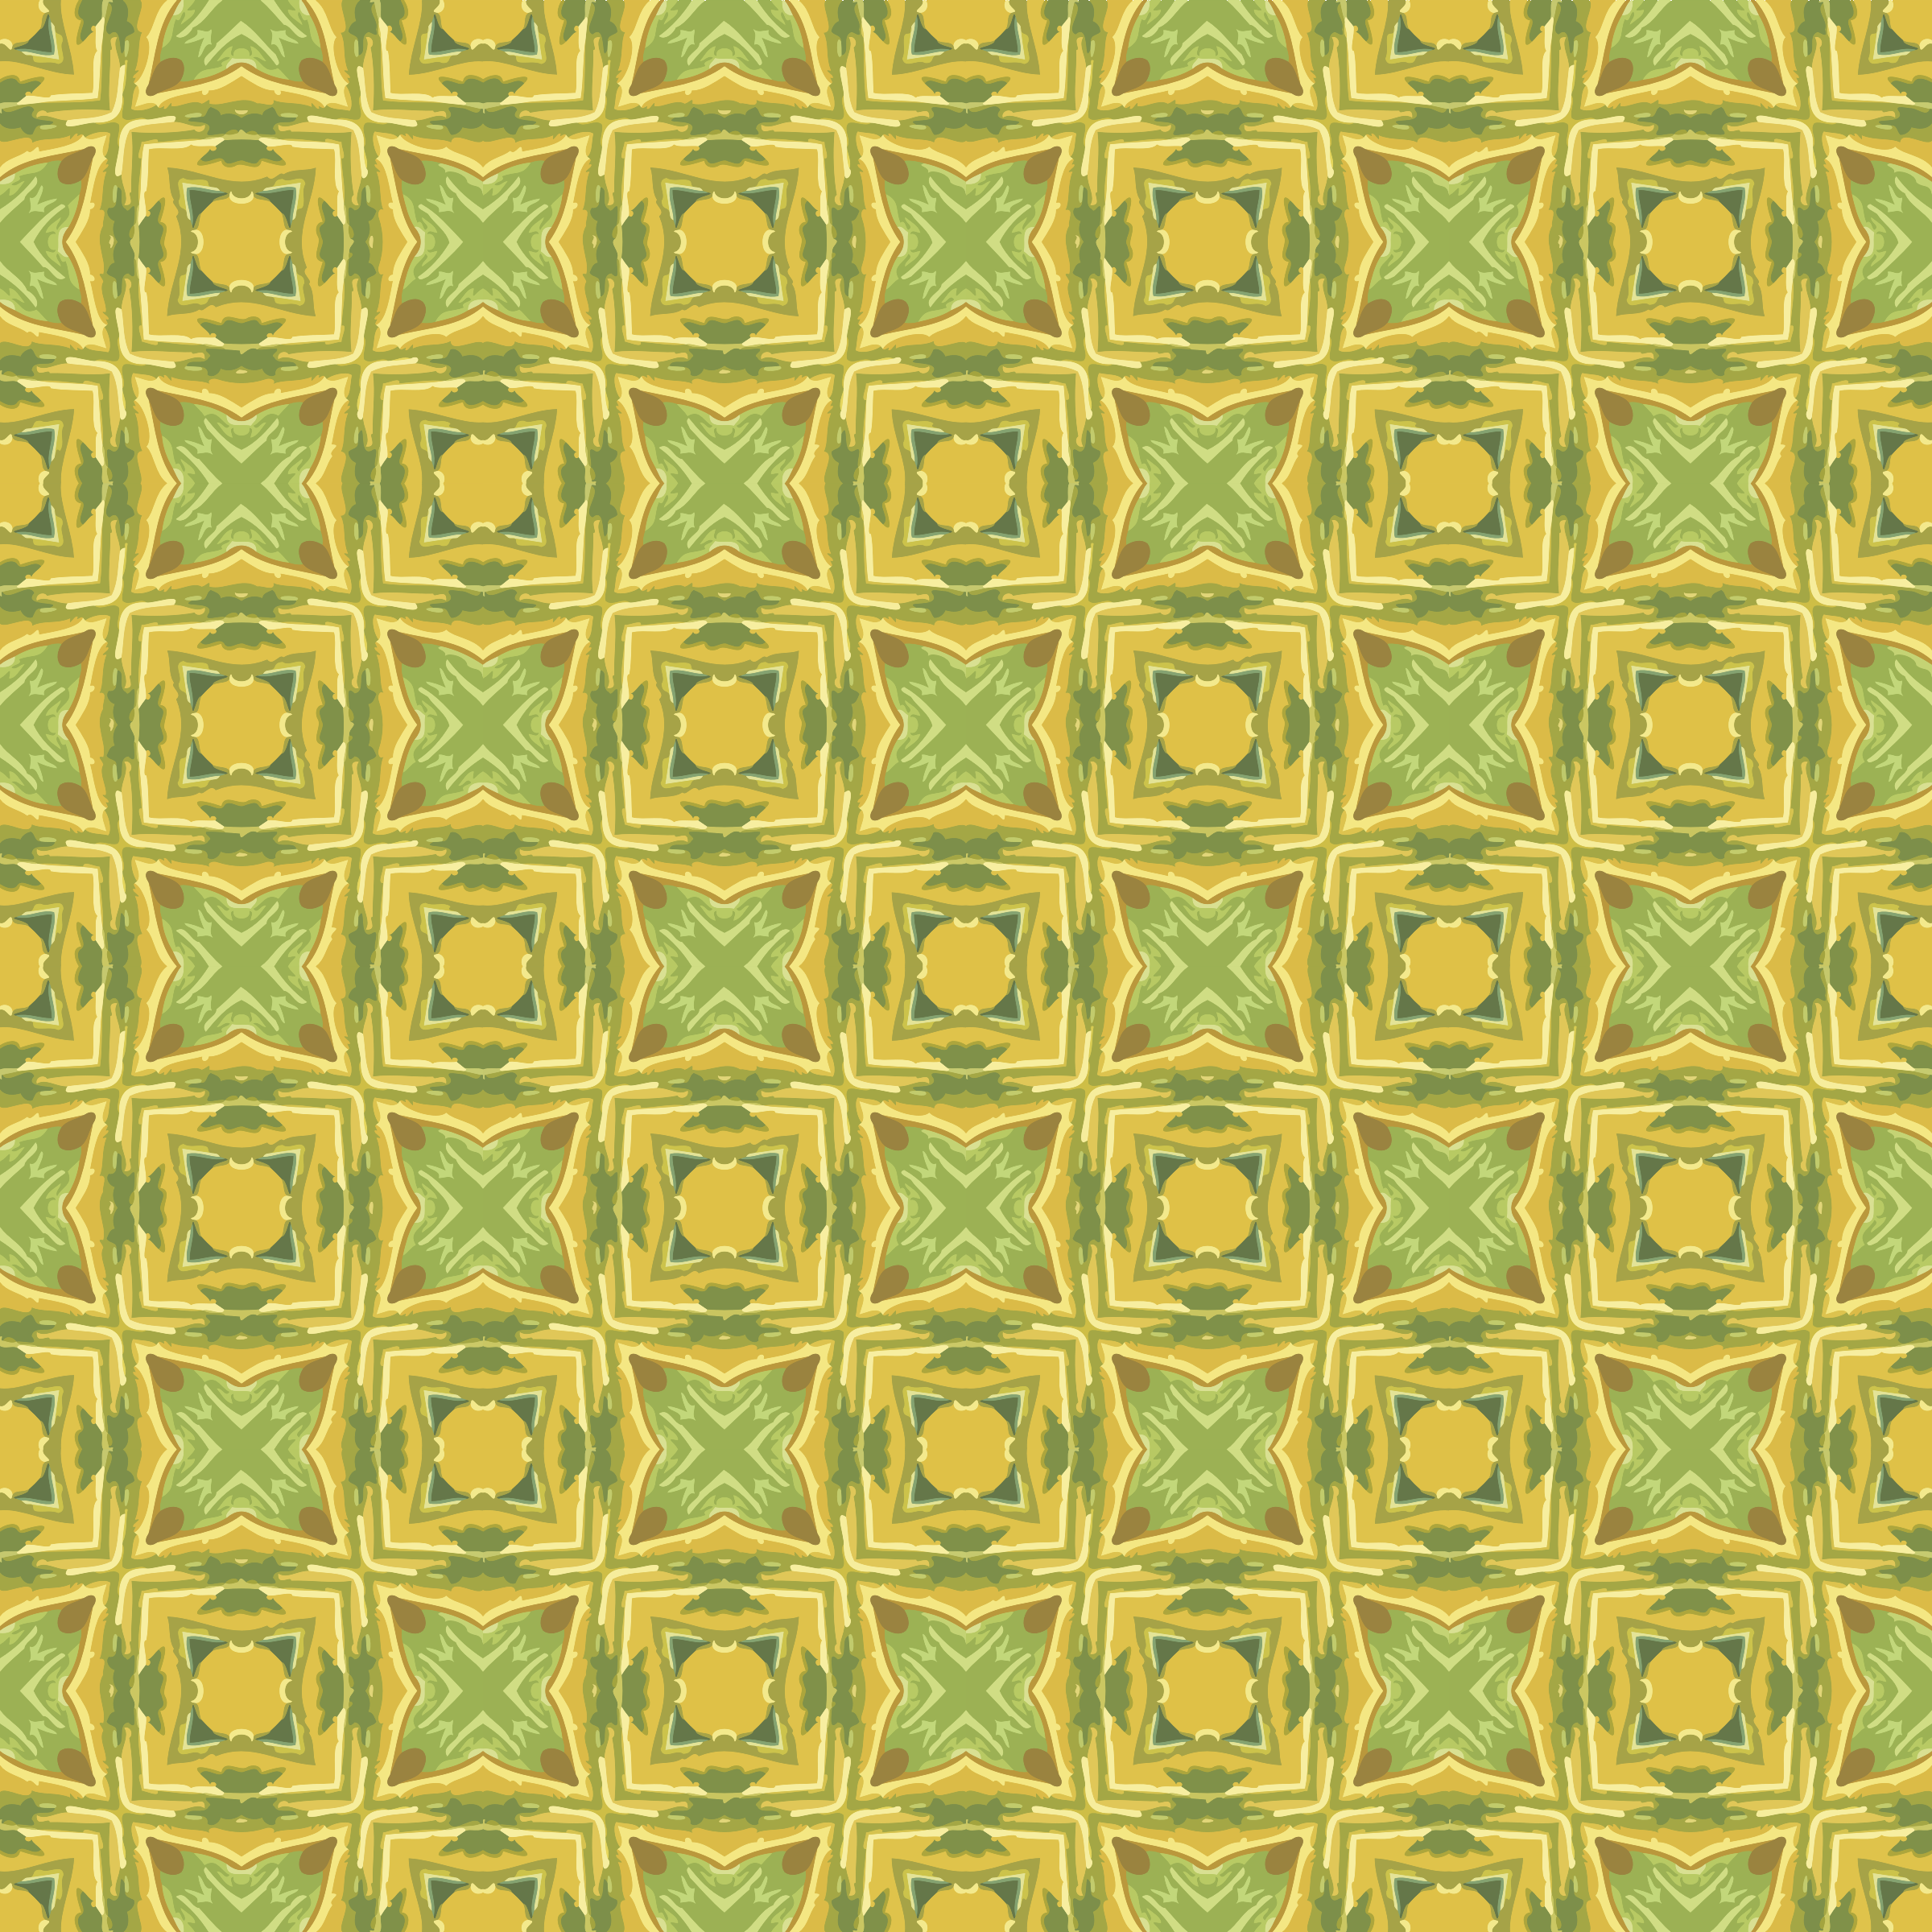 Background pattern 170 by Firkin